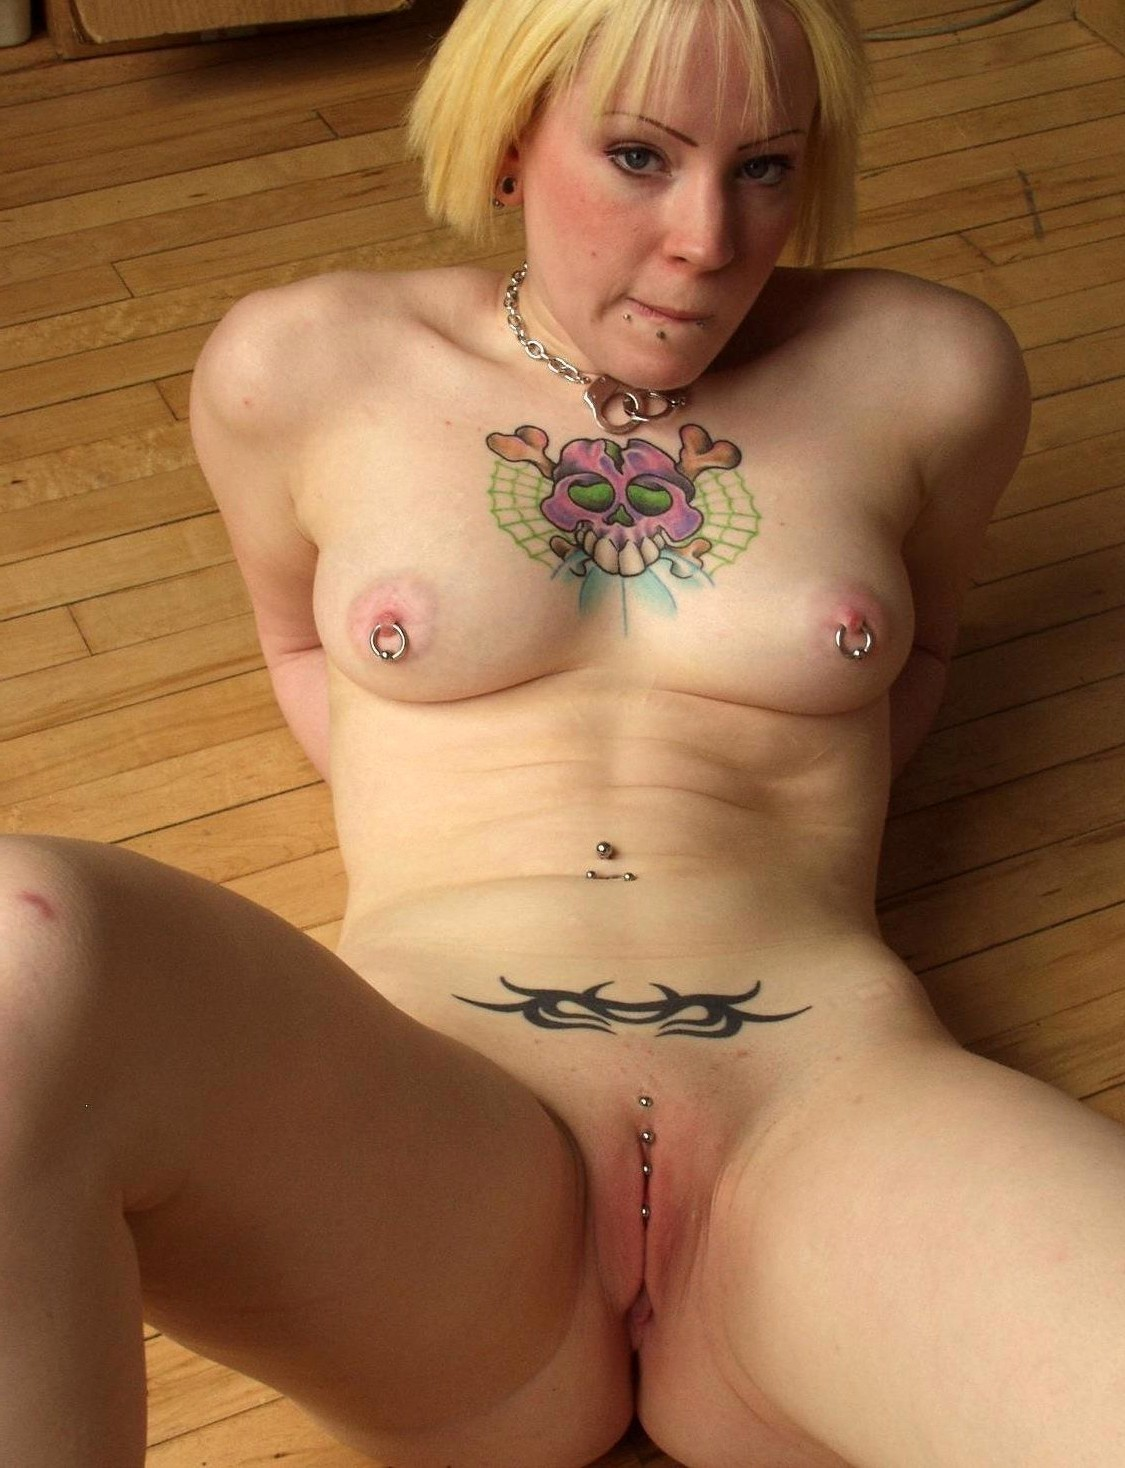 nude-amatuer-women-with-tattoos-nude-virgins-spread-wide